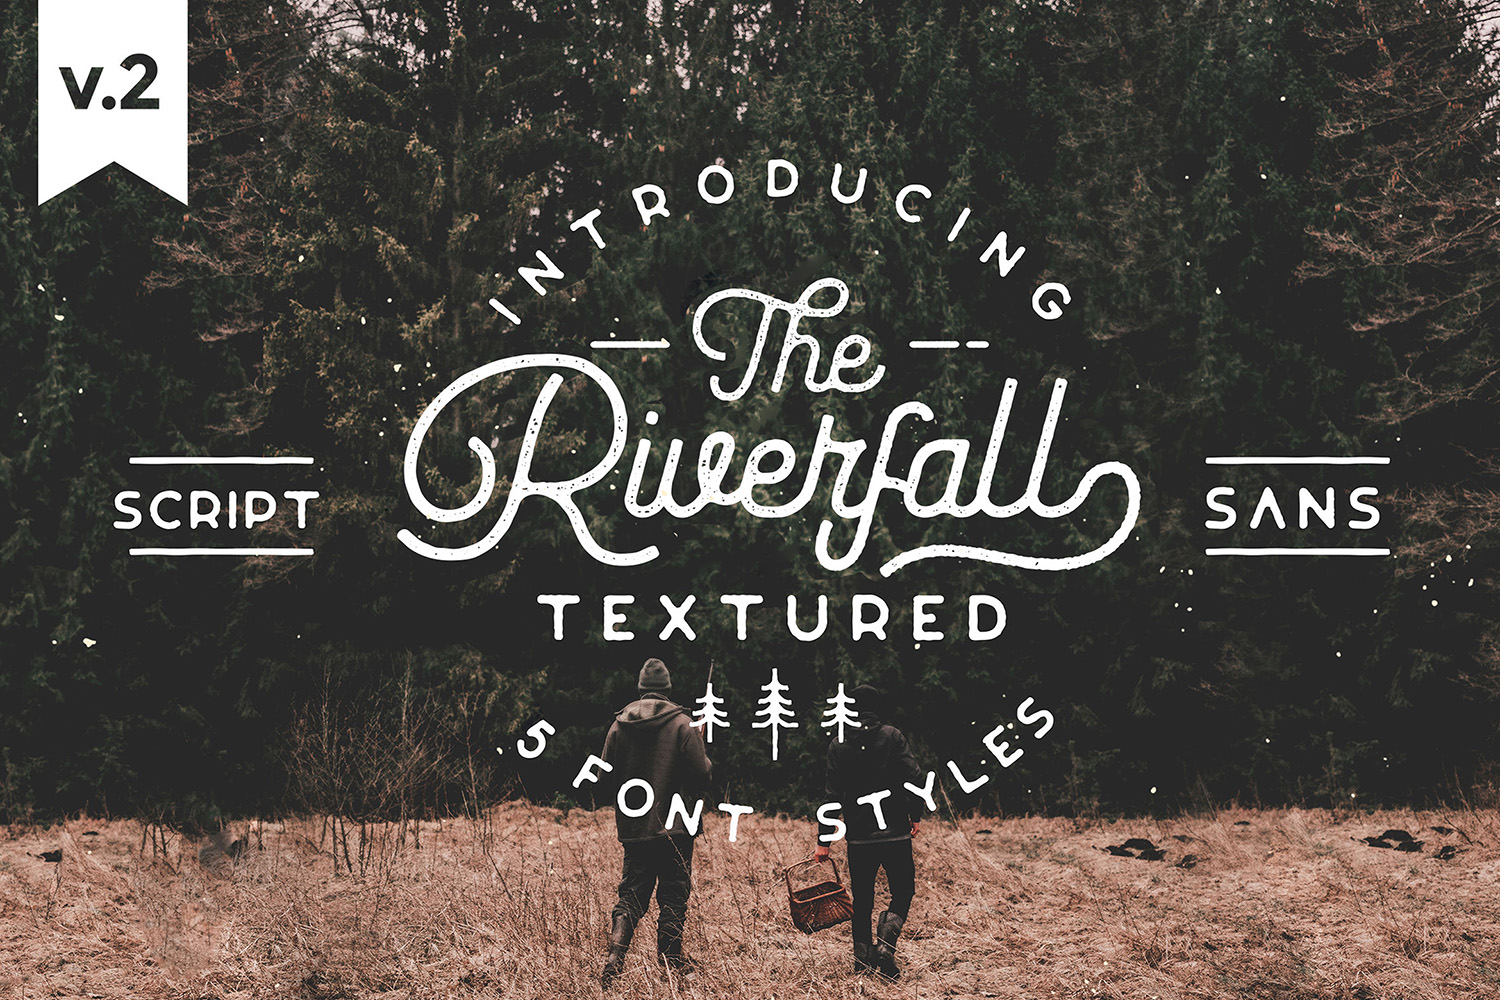 Riverfall Semi Rounded Textured Typeface Ver.2 example image 2